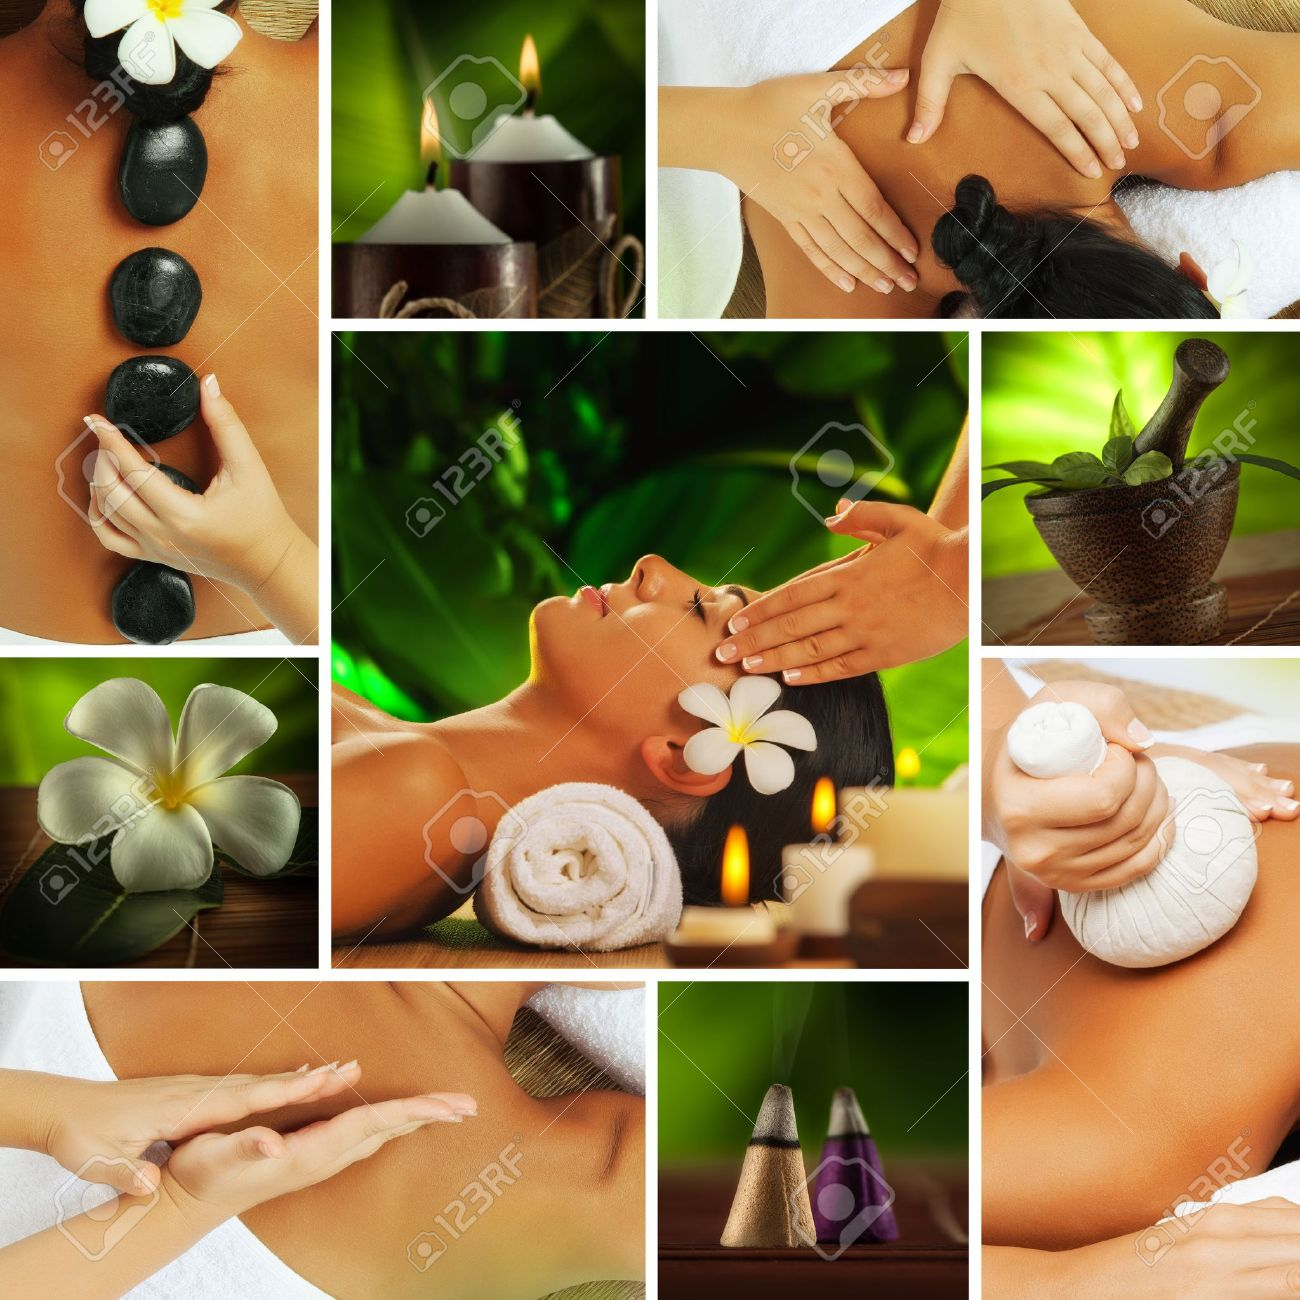 Spa theme  photo collage composed of different images Stock Photo - 14736743